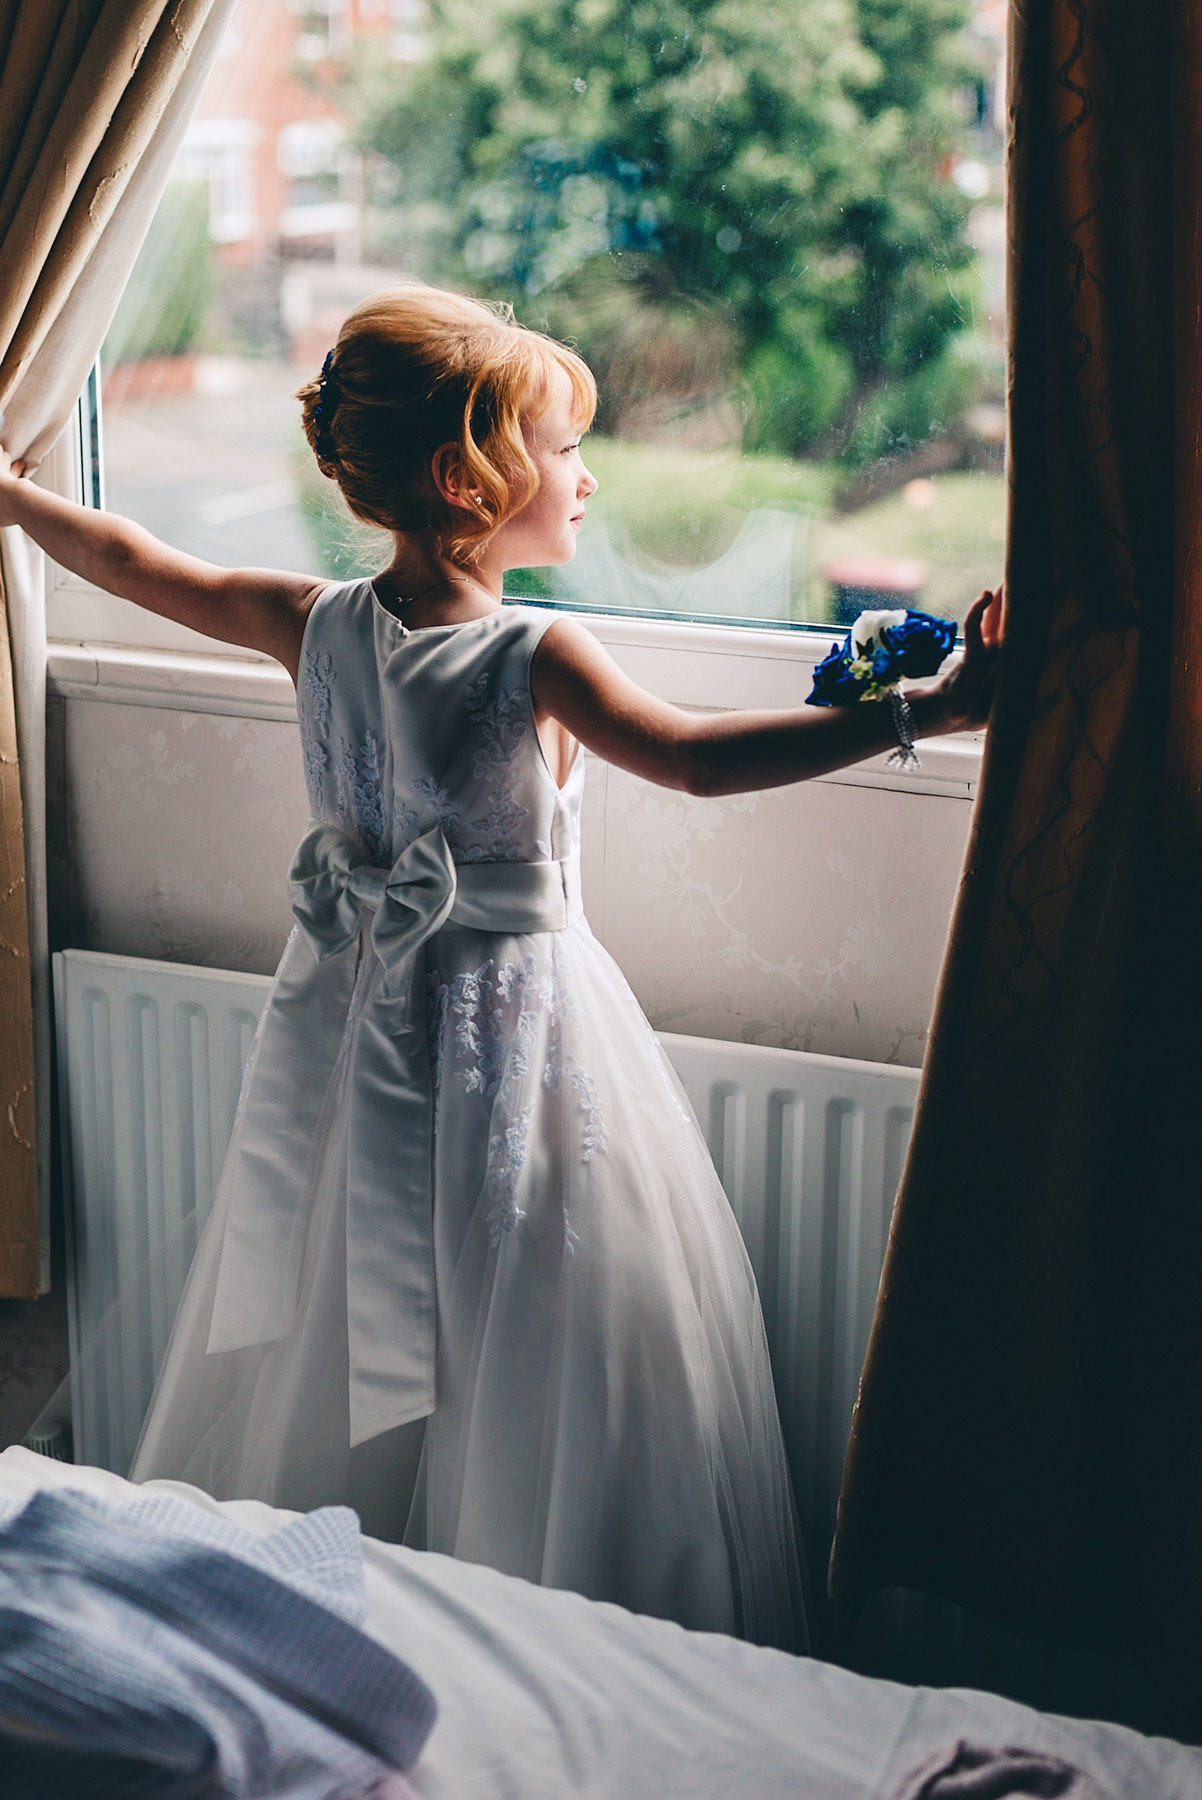 Girl looks out of window on morning of wedding